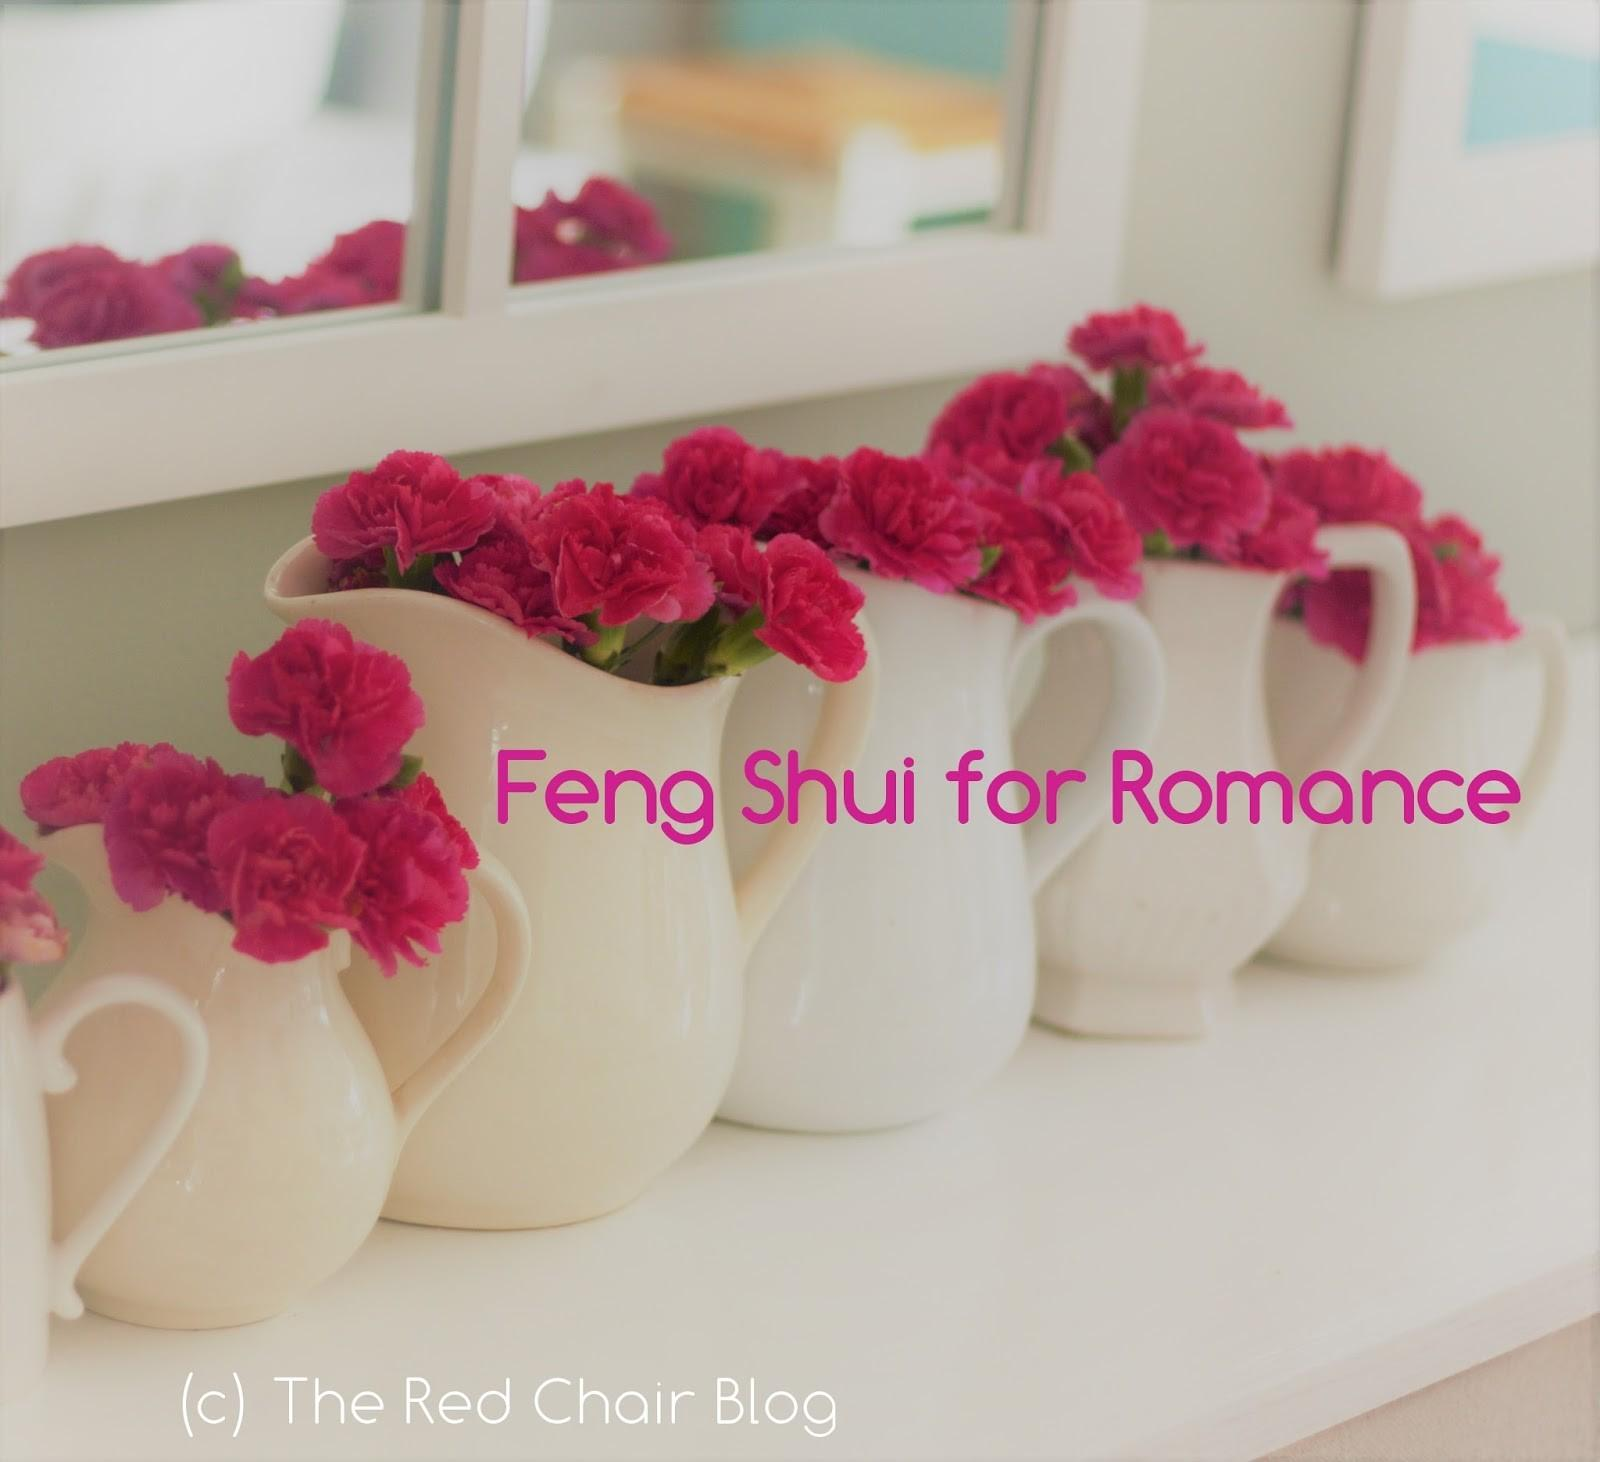 Red Chair Blog Feng Shui Tips Love Romance